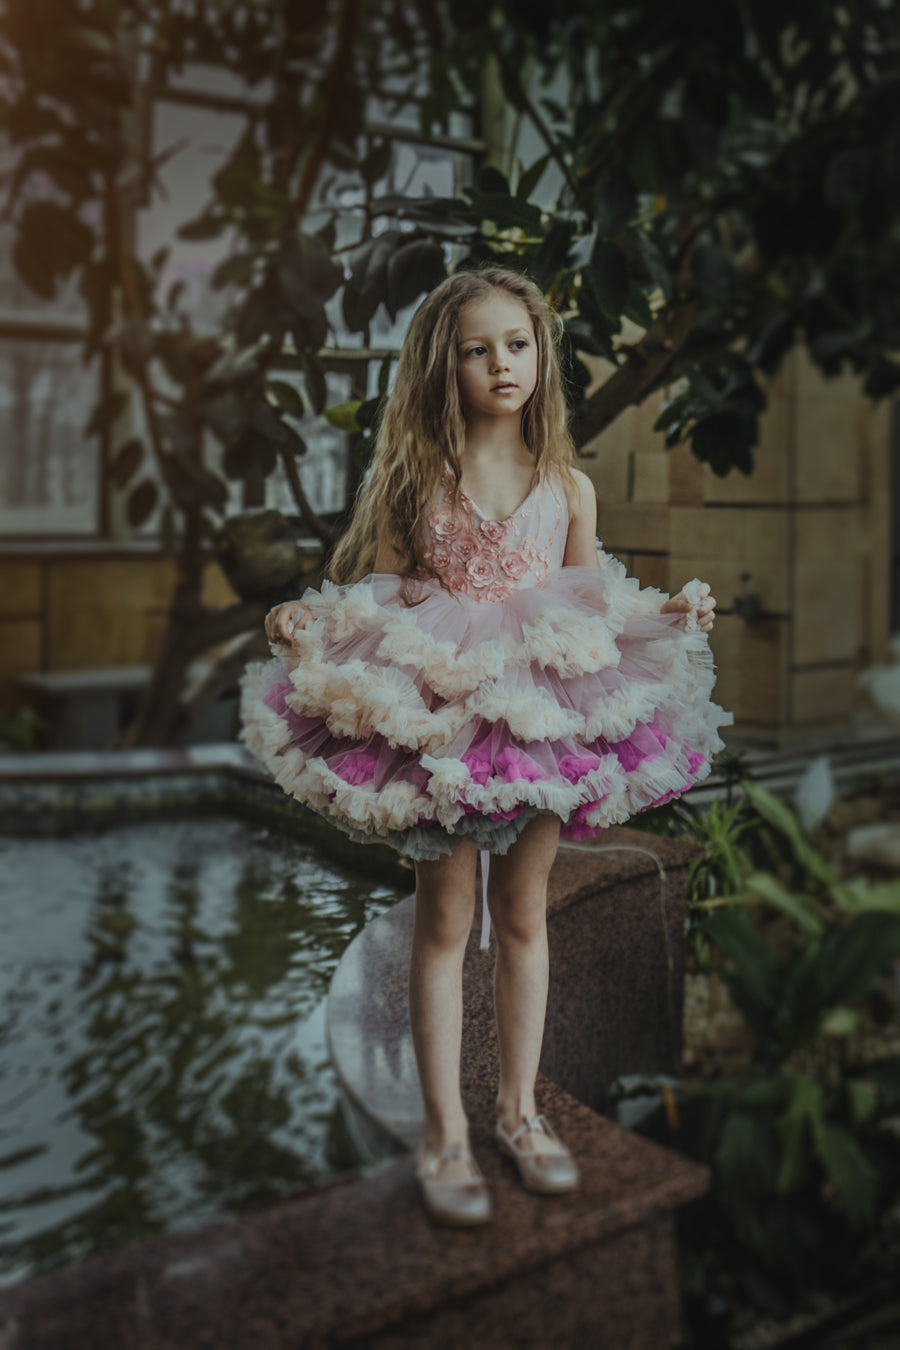 COUTURE TUTU multi color ombre tulle tutu wedding photoshoot